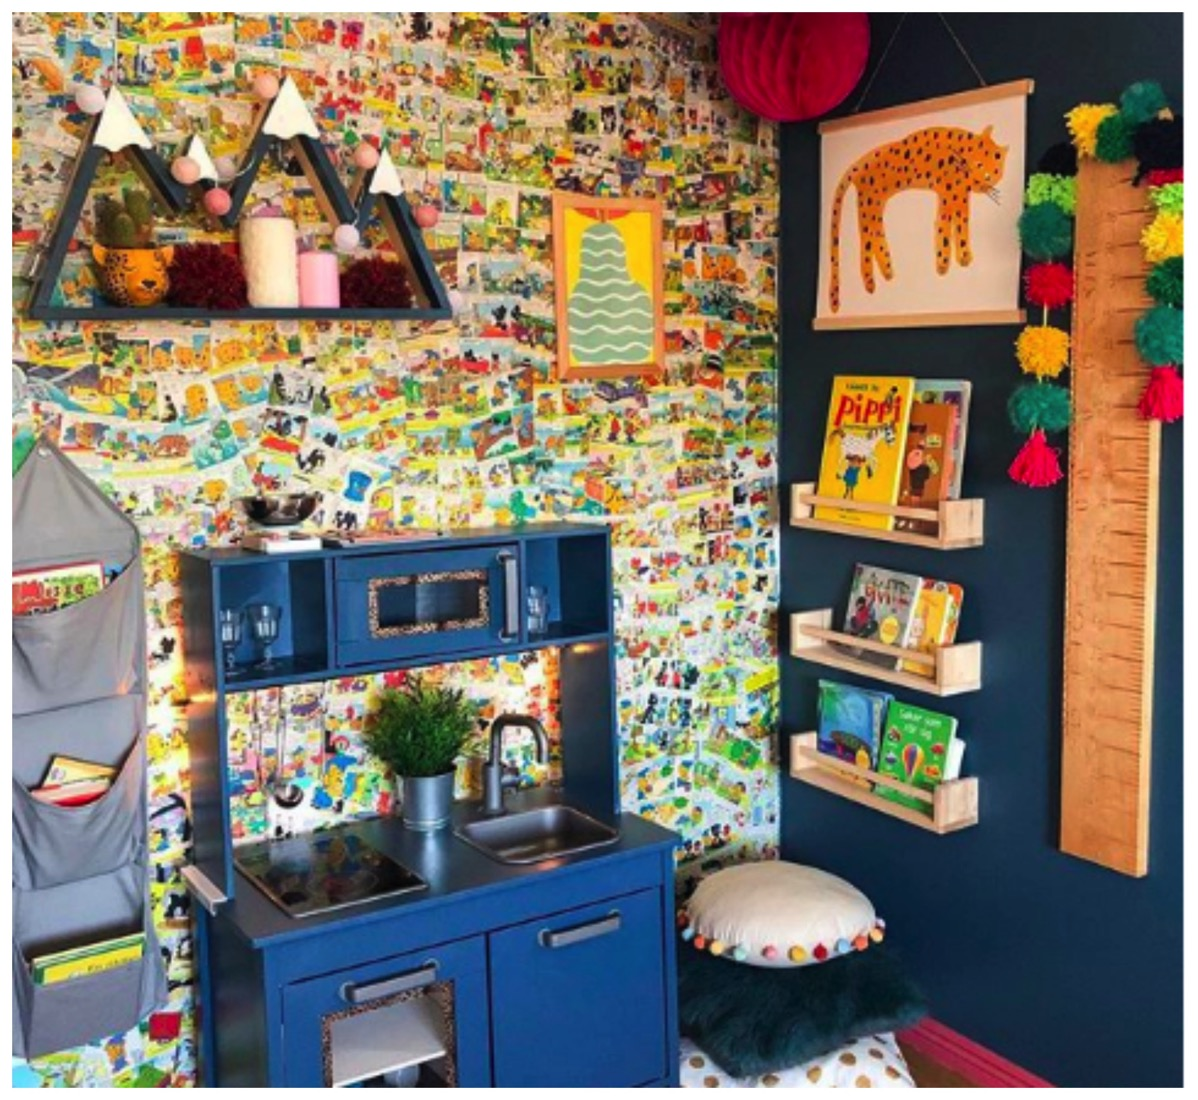 Colorful kids bed room kids kitchen area earthly urban design dig and hang colorful kid room